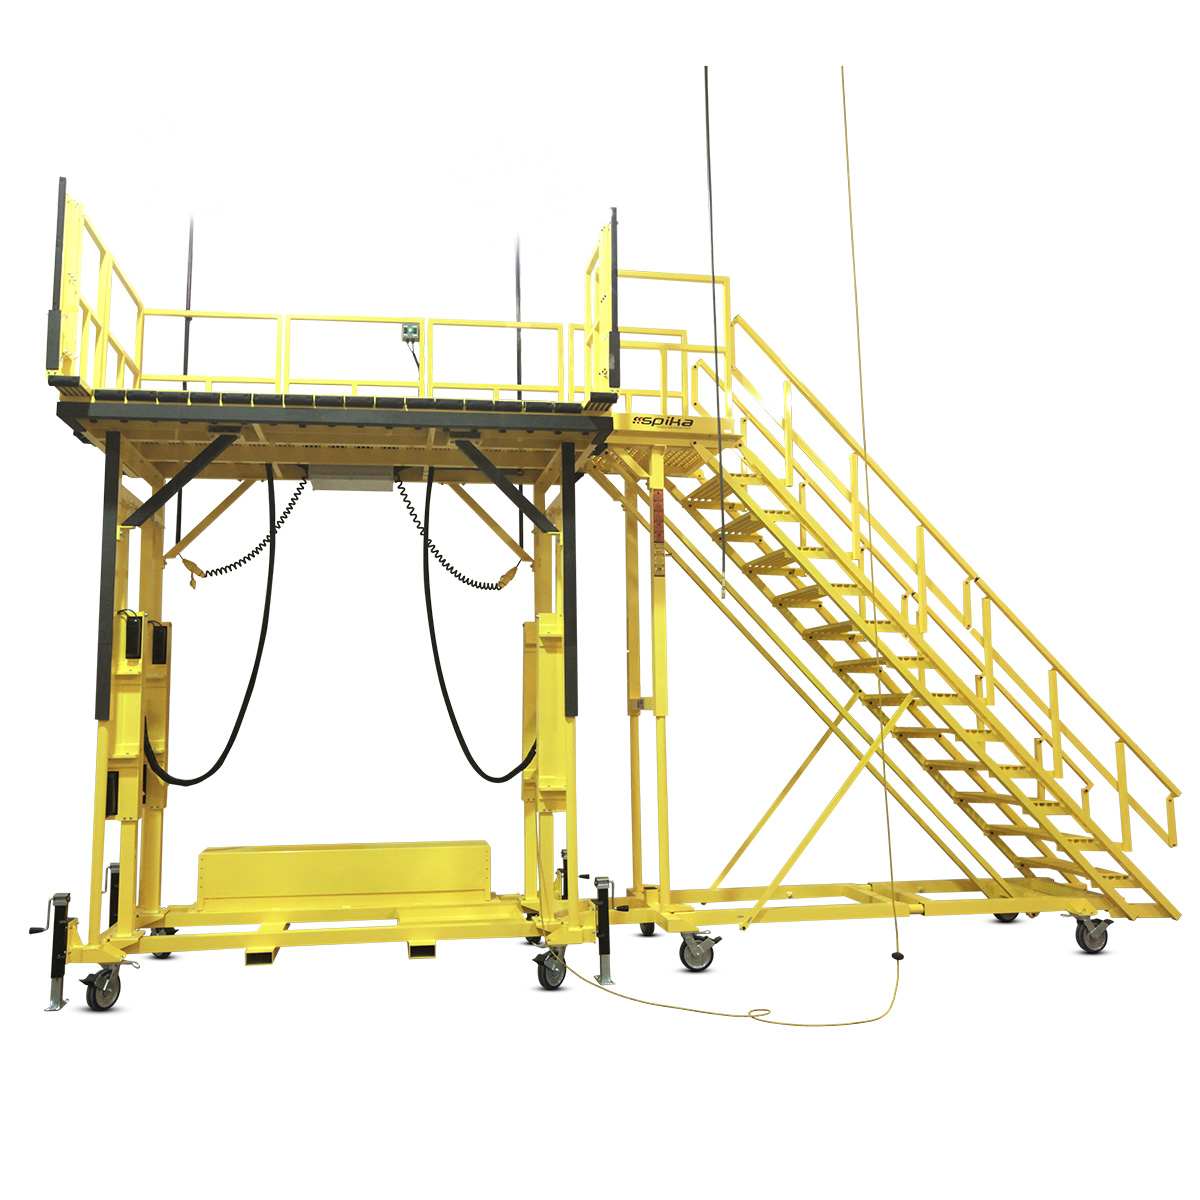 Rust-resistant, UV protected powder coating in custom colors for OSHA compliant portable, aluminum work platforms.